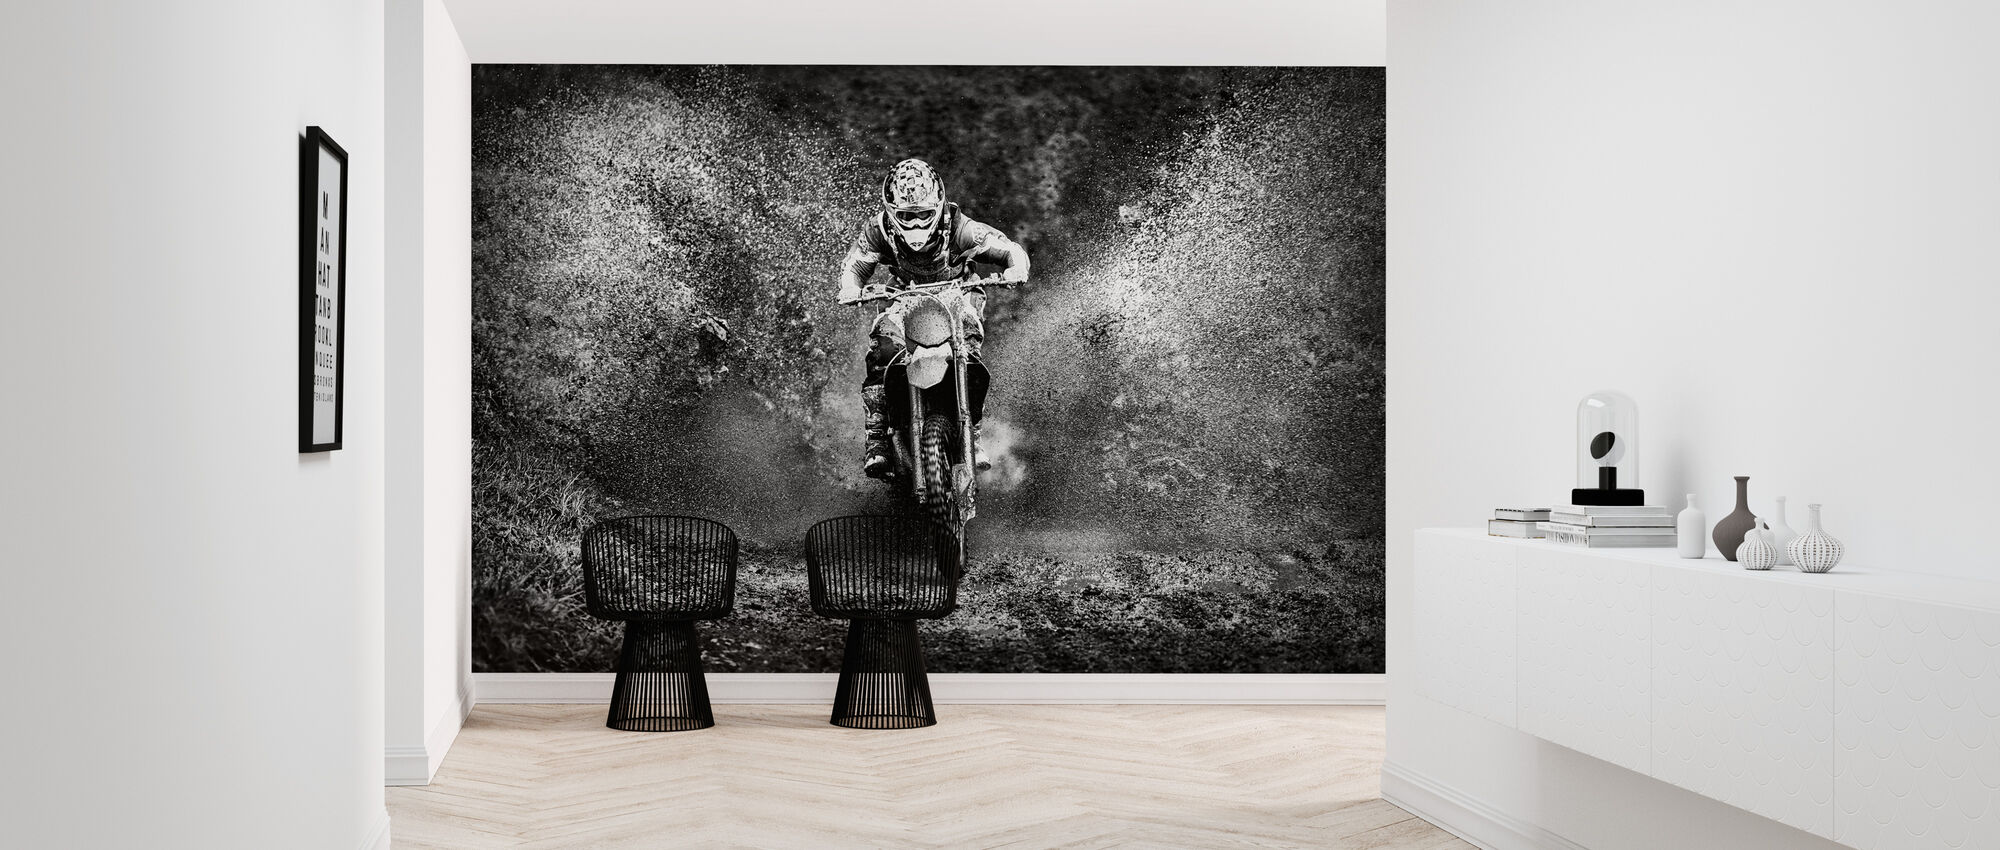 Spray Mud Motorfiets, zwart en wit - Behang - Gang